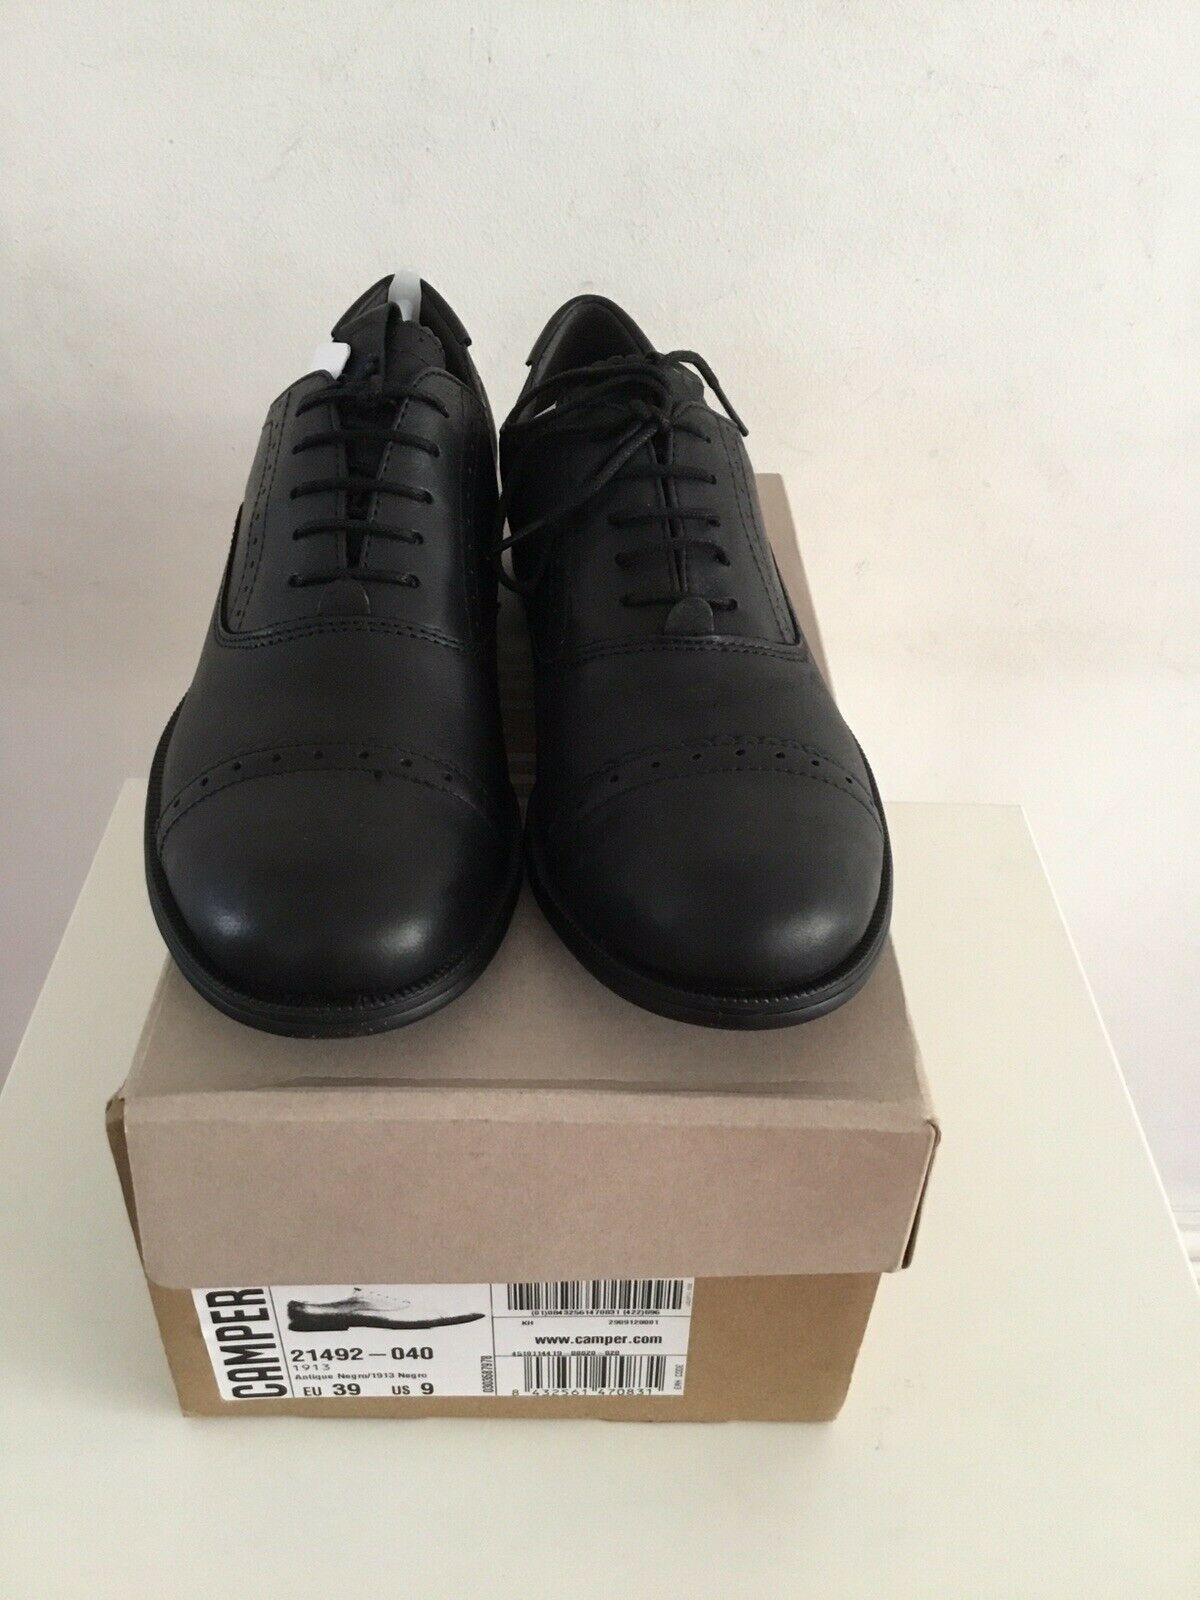 NEW IN BOX CAMPER MIL schwarz 100% LEATHER BROGUES LACE-UPS FLATS schuhe 6 39